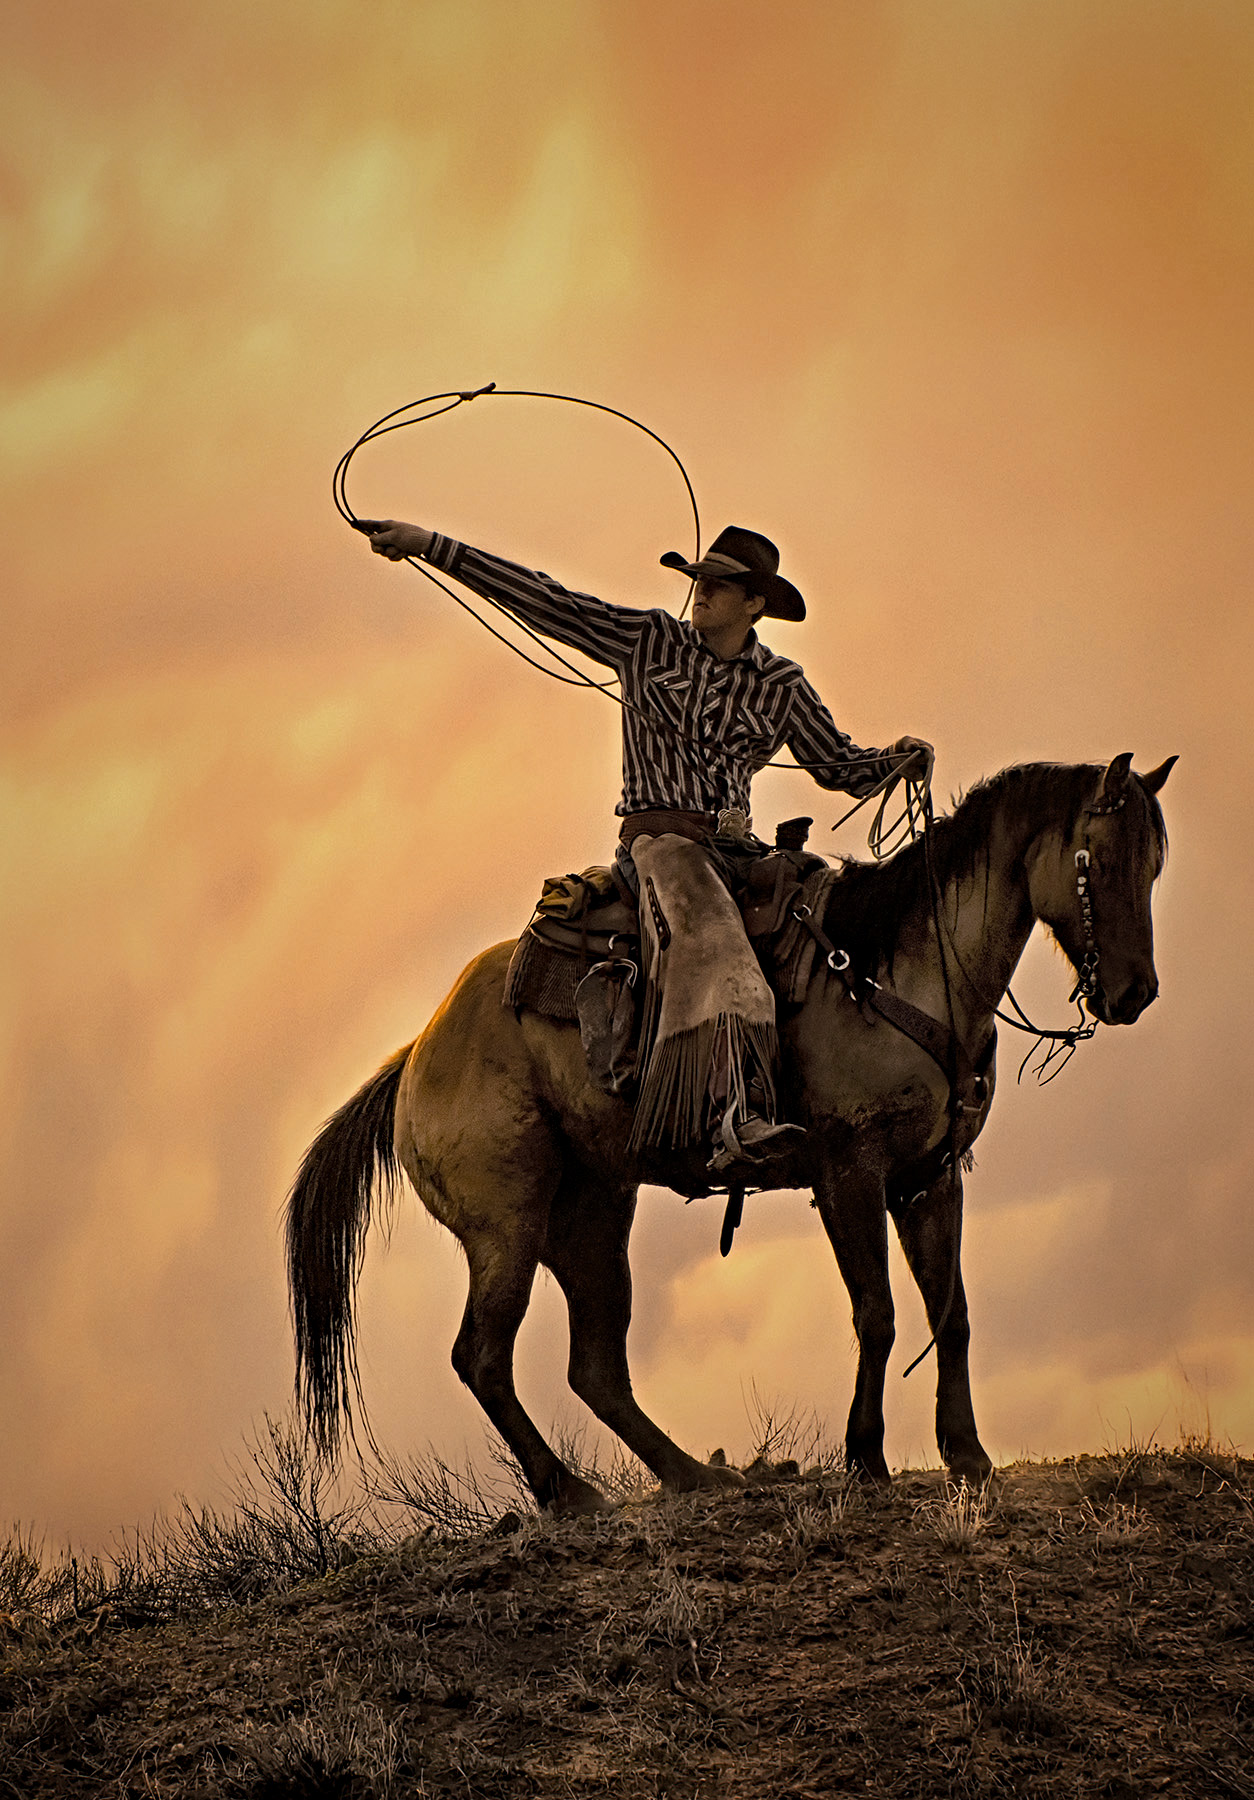 ally Thomson: Cowboy Dreams